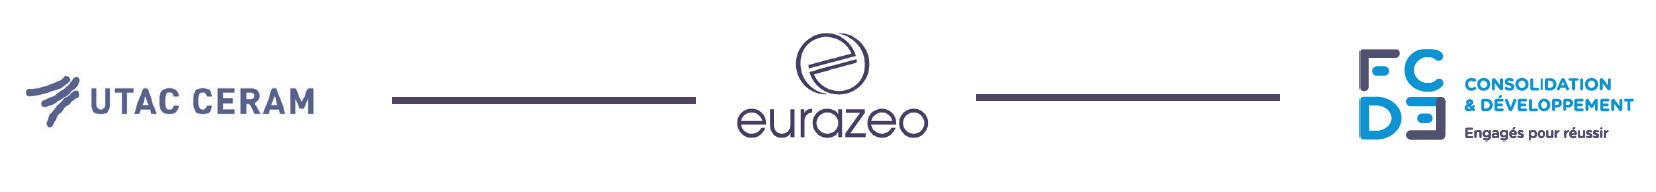 EURAZEO SIGNS AN EXCLUSIVE AGREEMENT WITH THE FCDE IN ORDER TO ACQUIRE UTAC CERAM